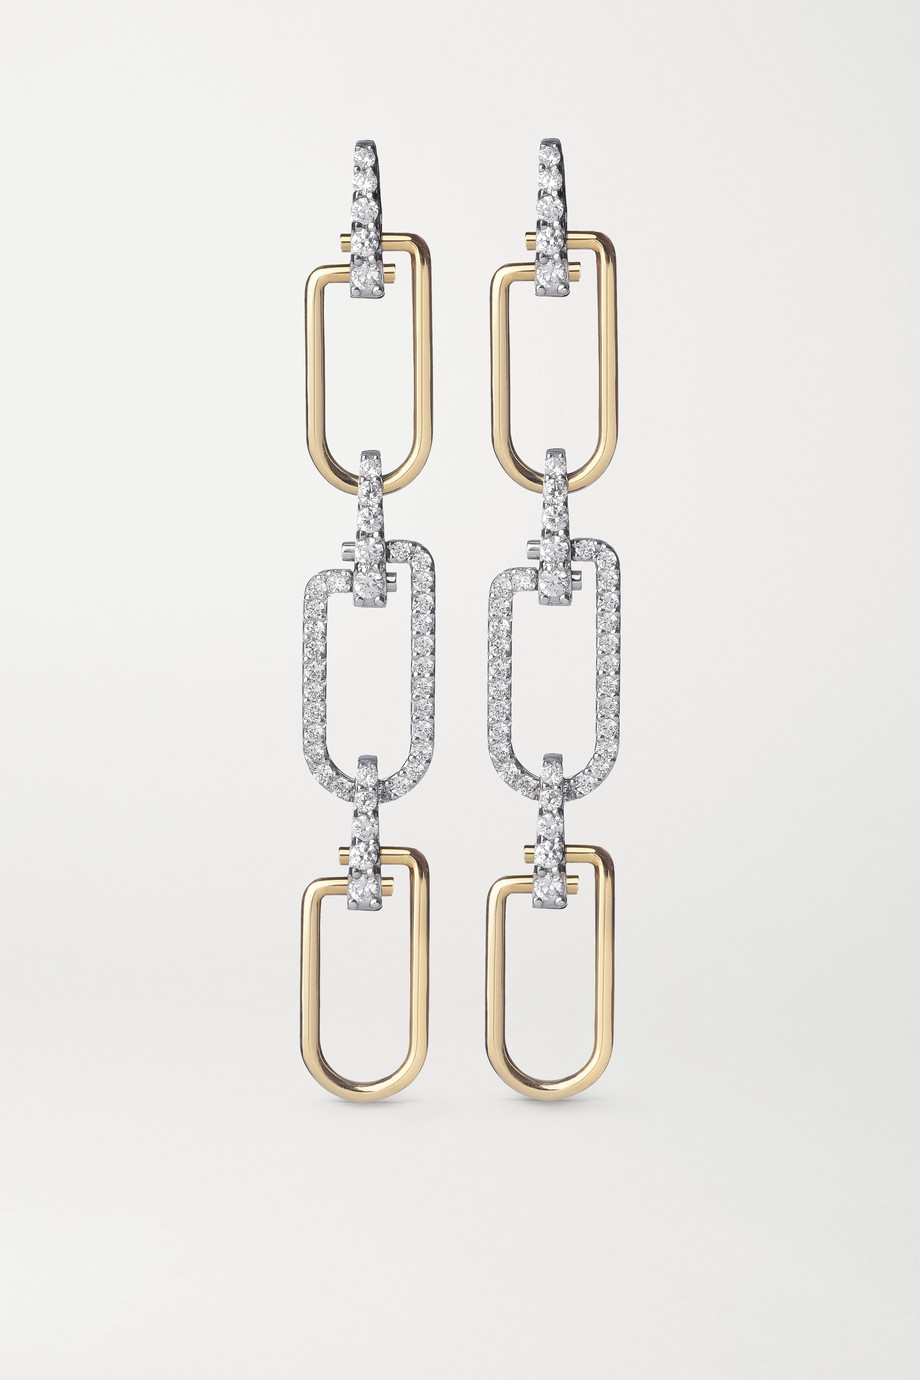 EÉRA Reine 18-karat yellow and white gold diamond earrings